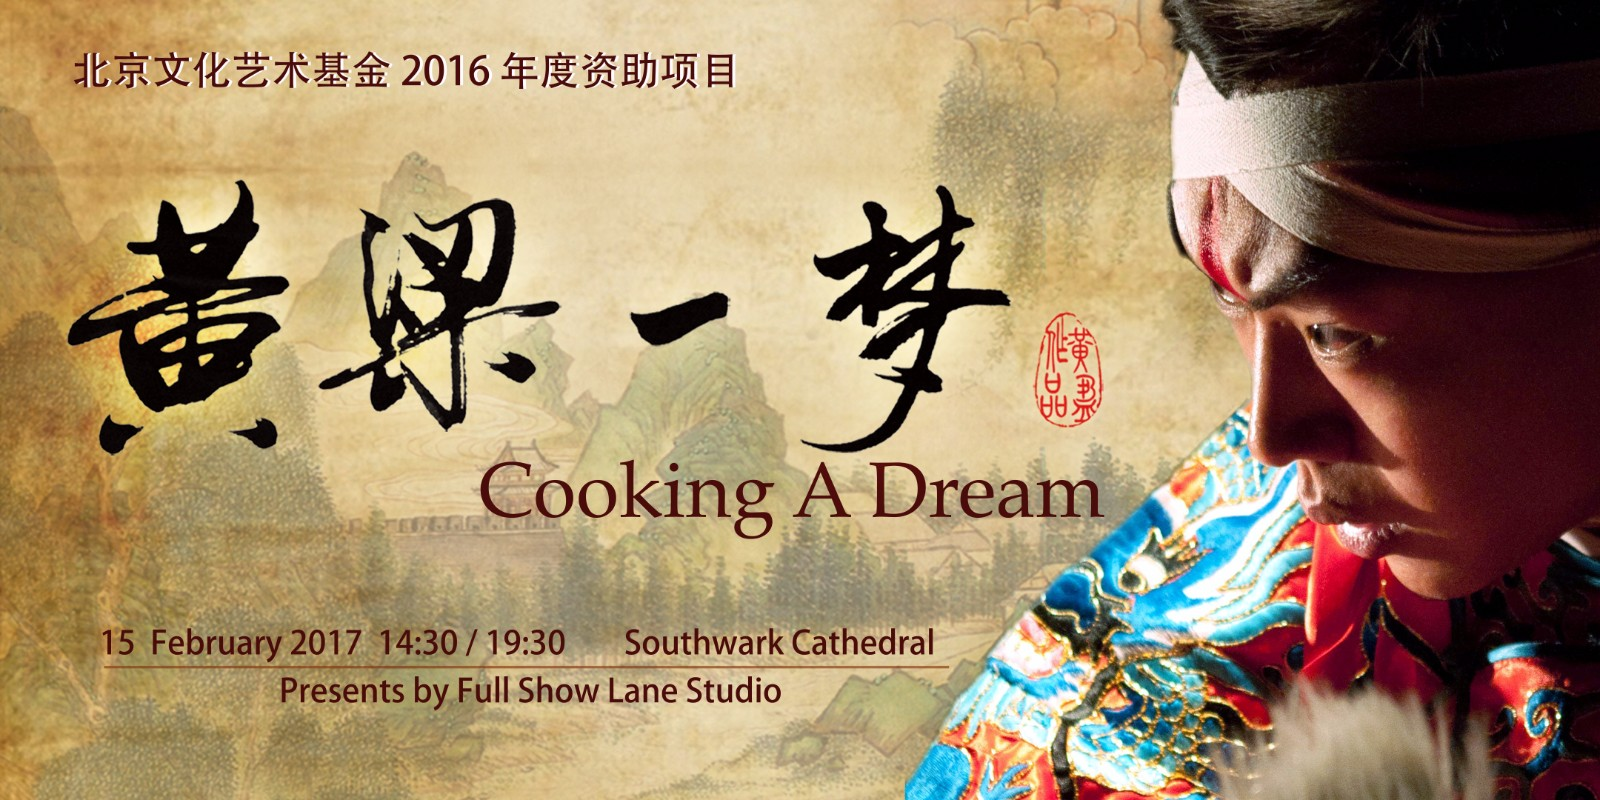 黄粱一梦 Cooking A Dream|黄盈作品 Full Show Lane Studio (晚间场)